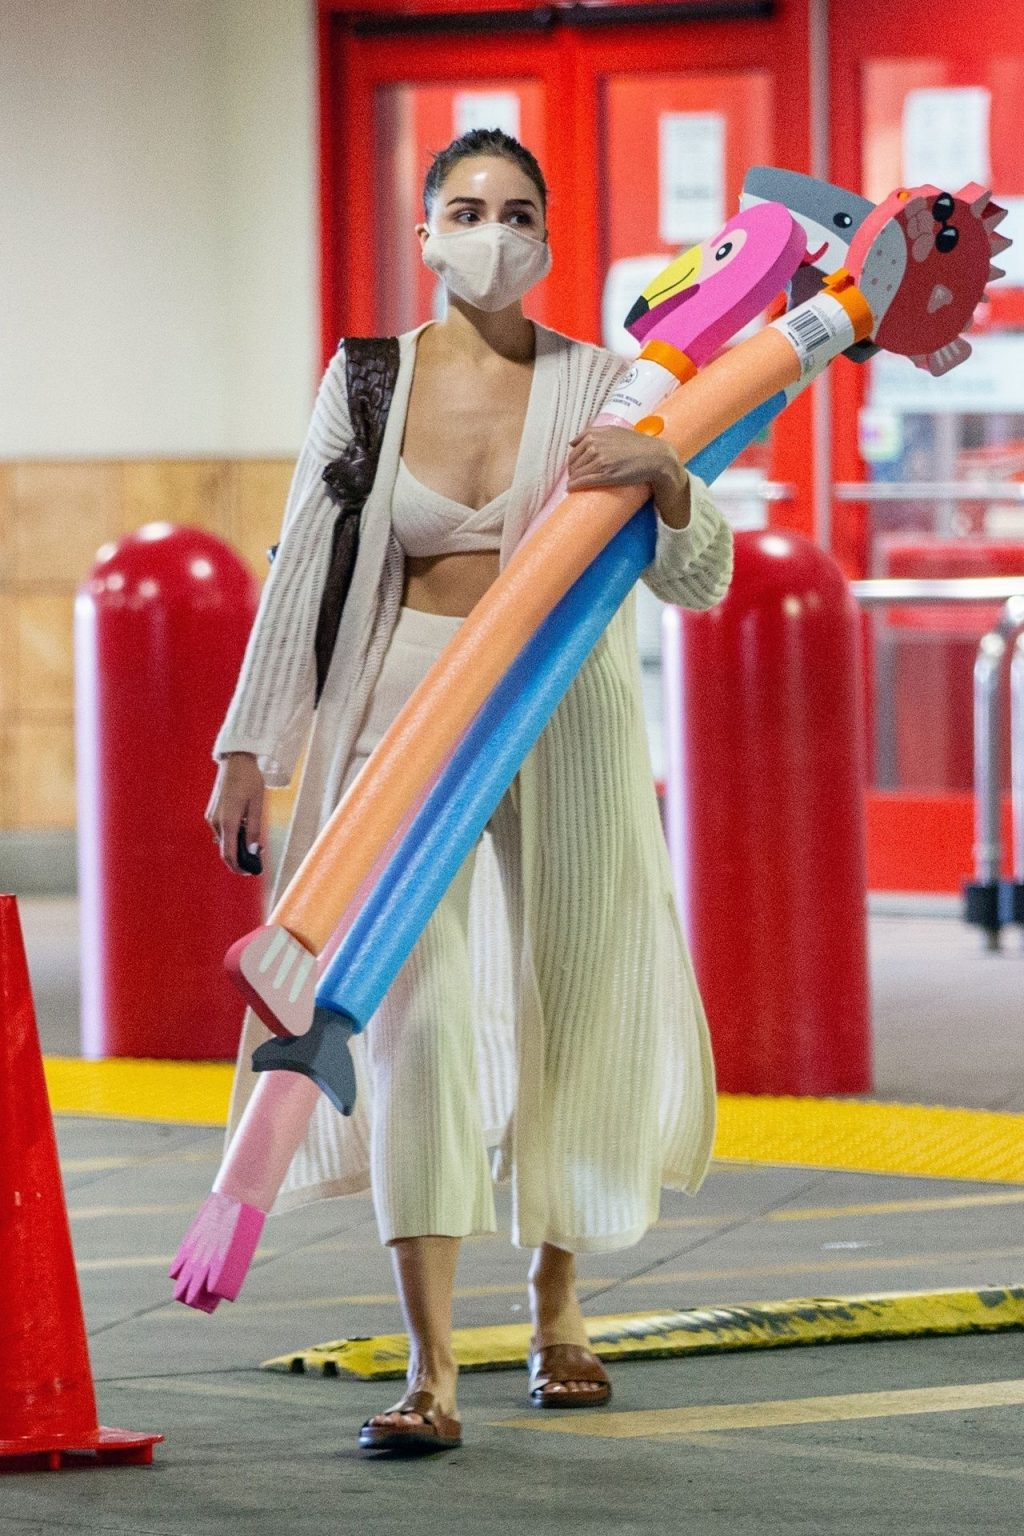 Olivia Culpo Shops at Target for Pool Toys and Flowers (30 Photos)